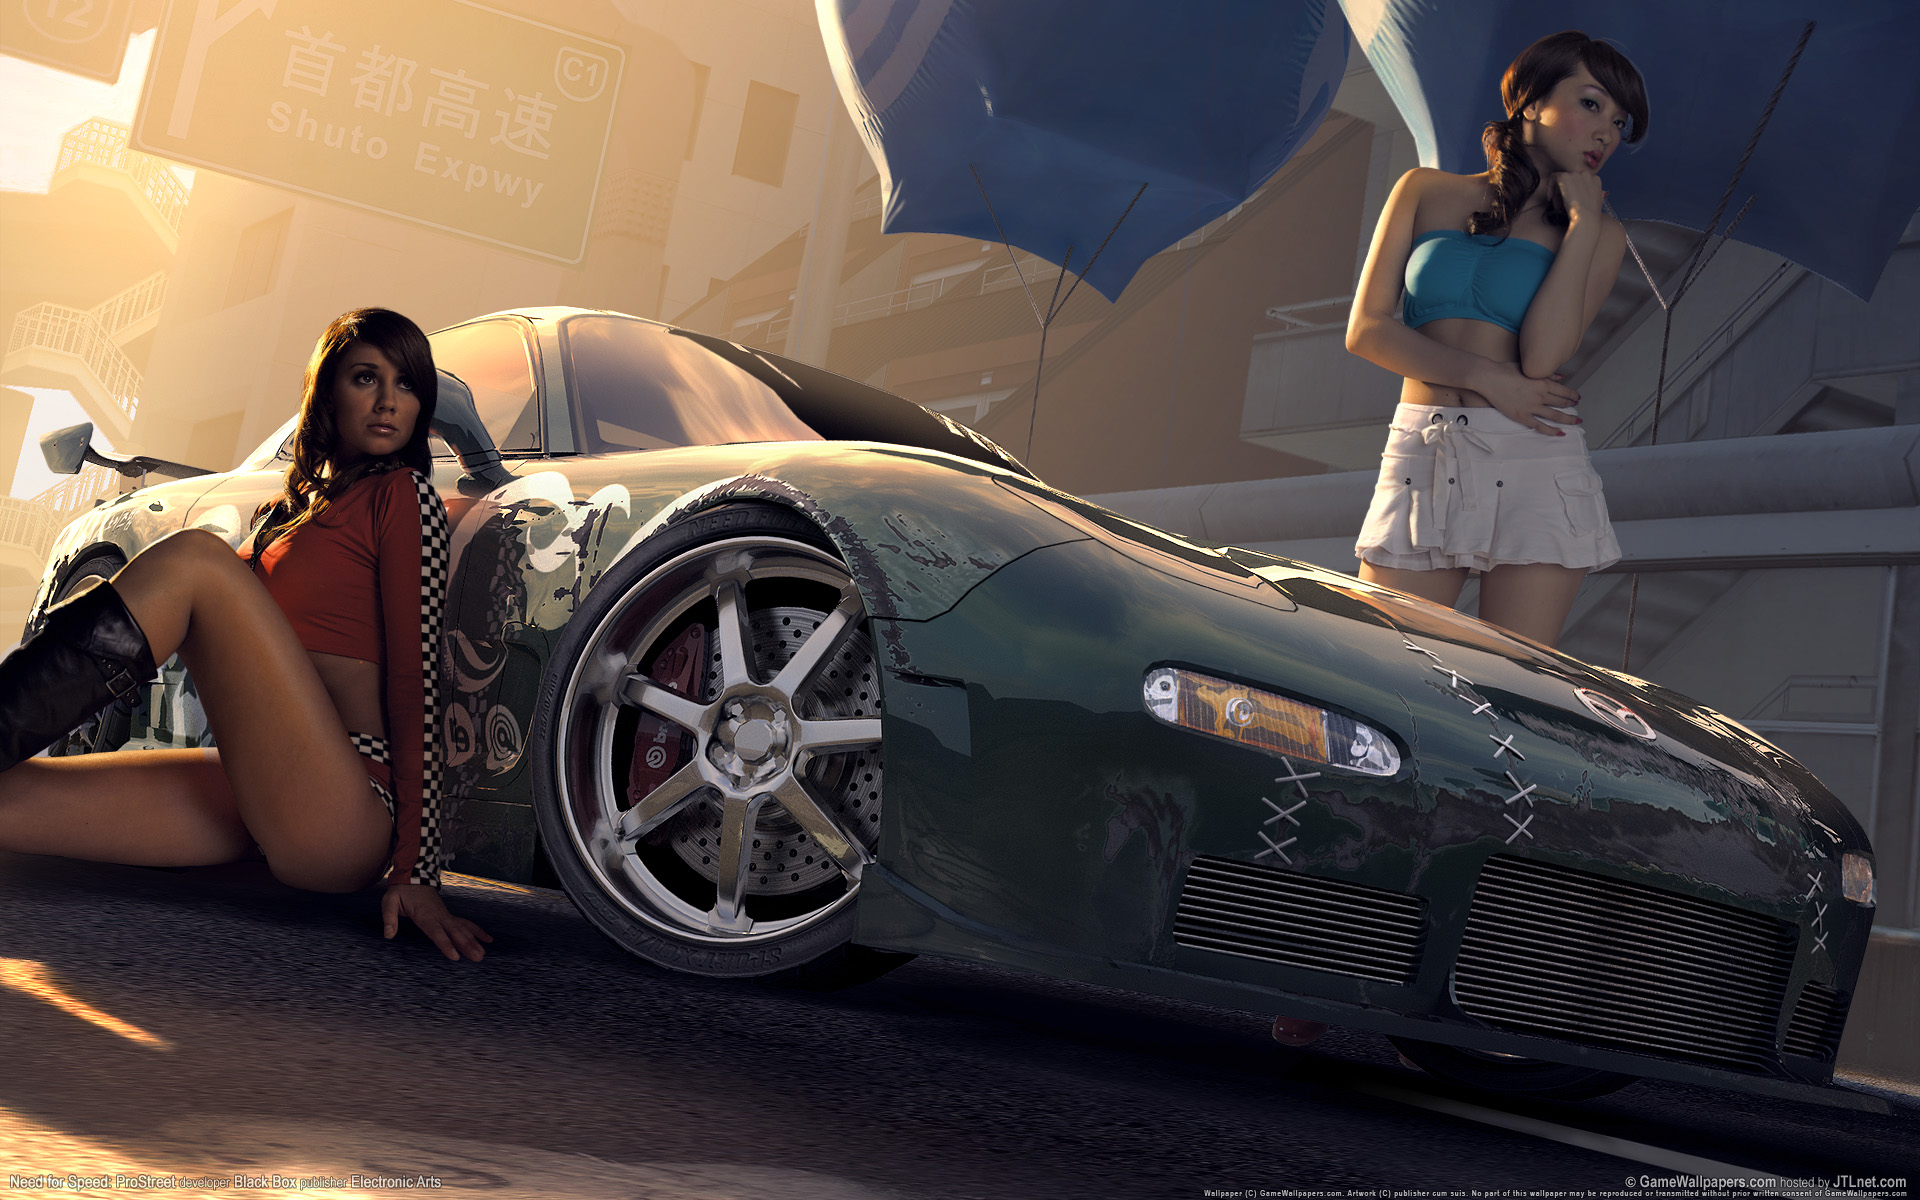 Need For Speed Prostreet Babes Wallpaper Cars Hd Desktop Wallpapers 1920x1200